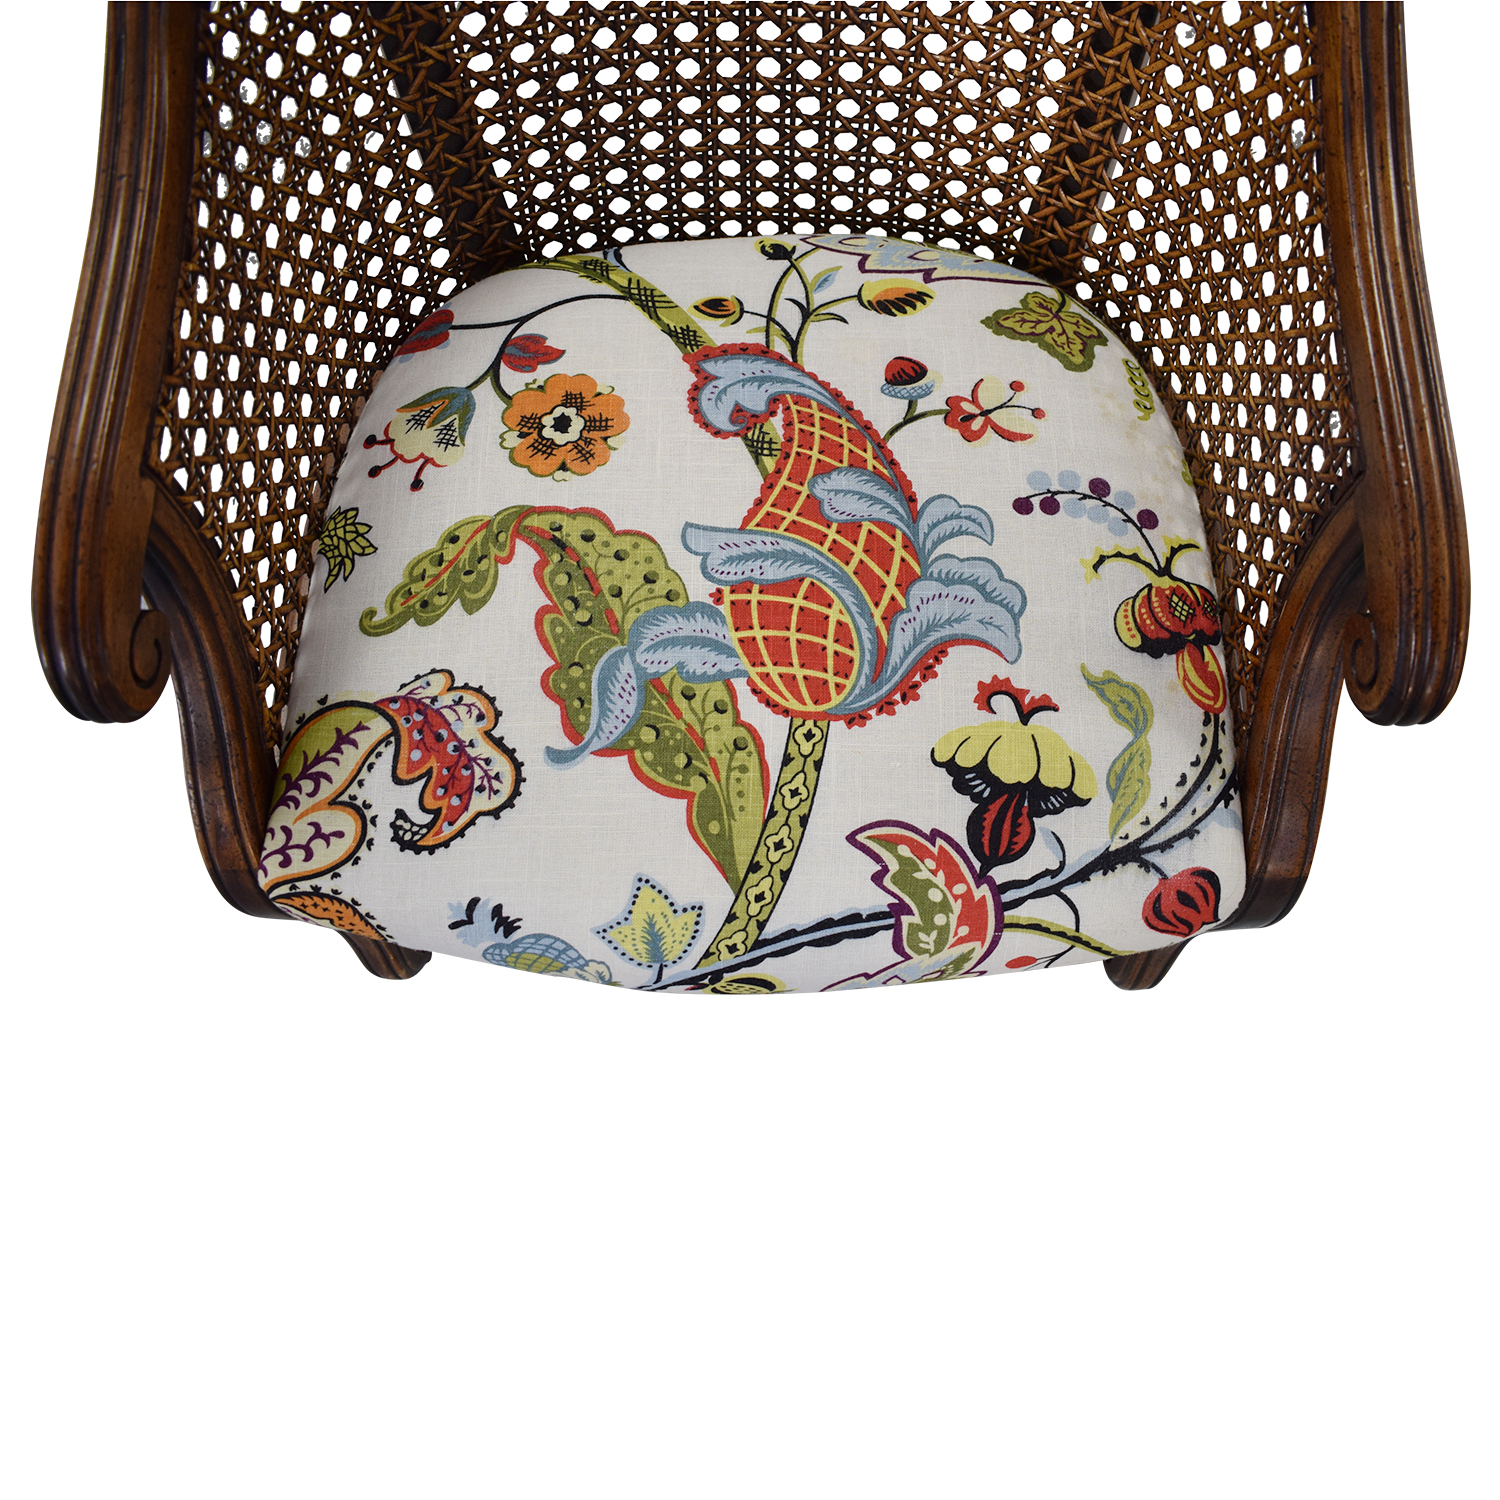 Heirloom Fruitwood Caned Armchair price